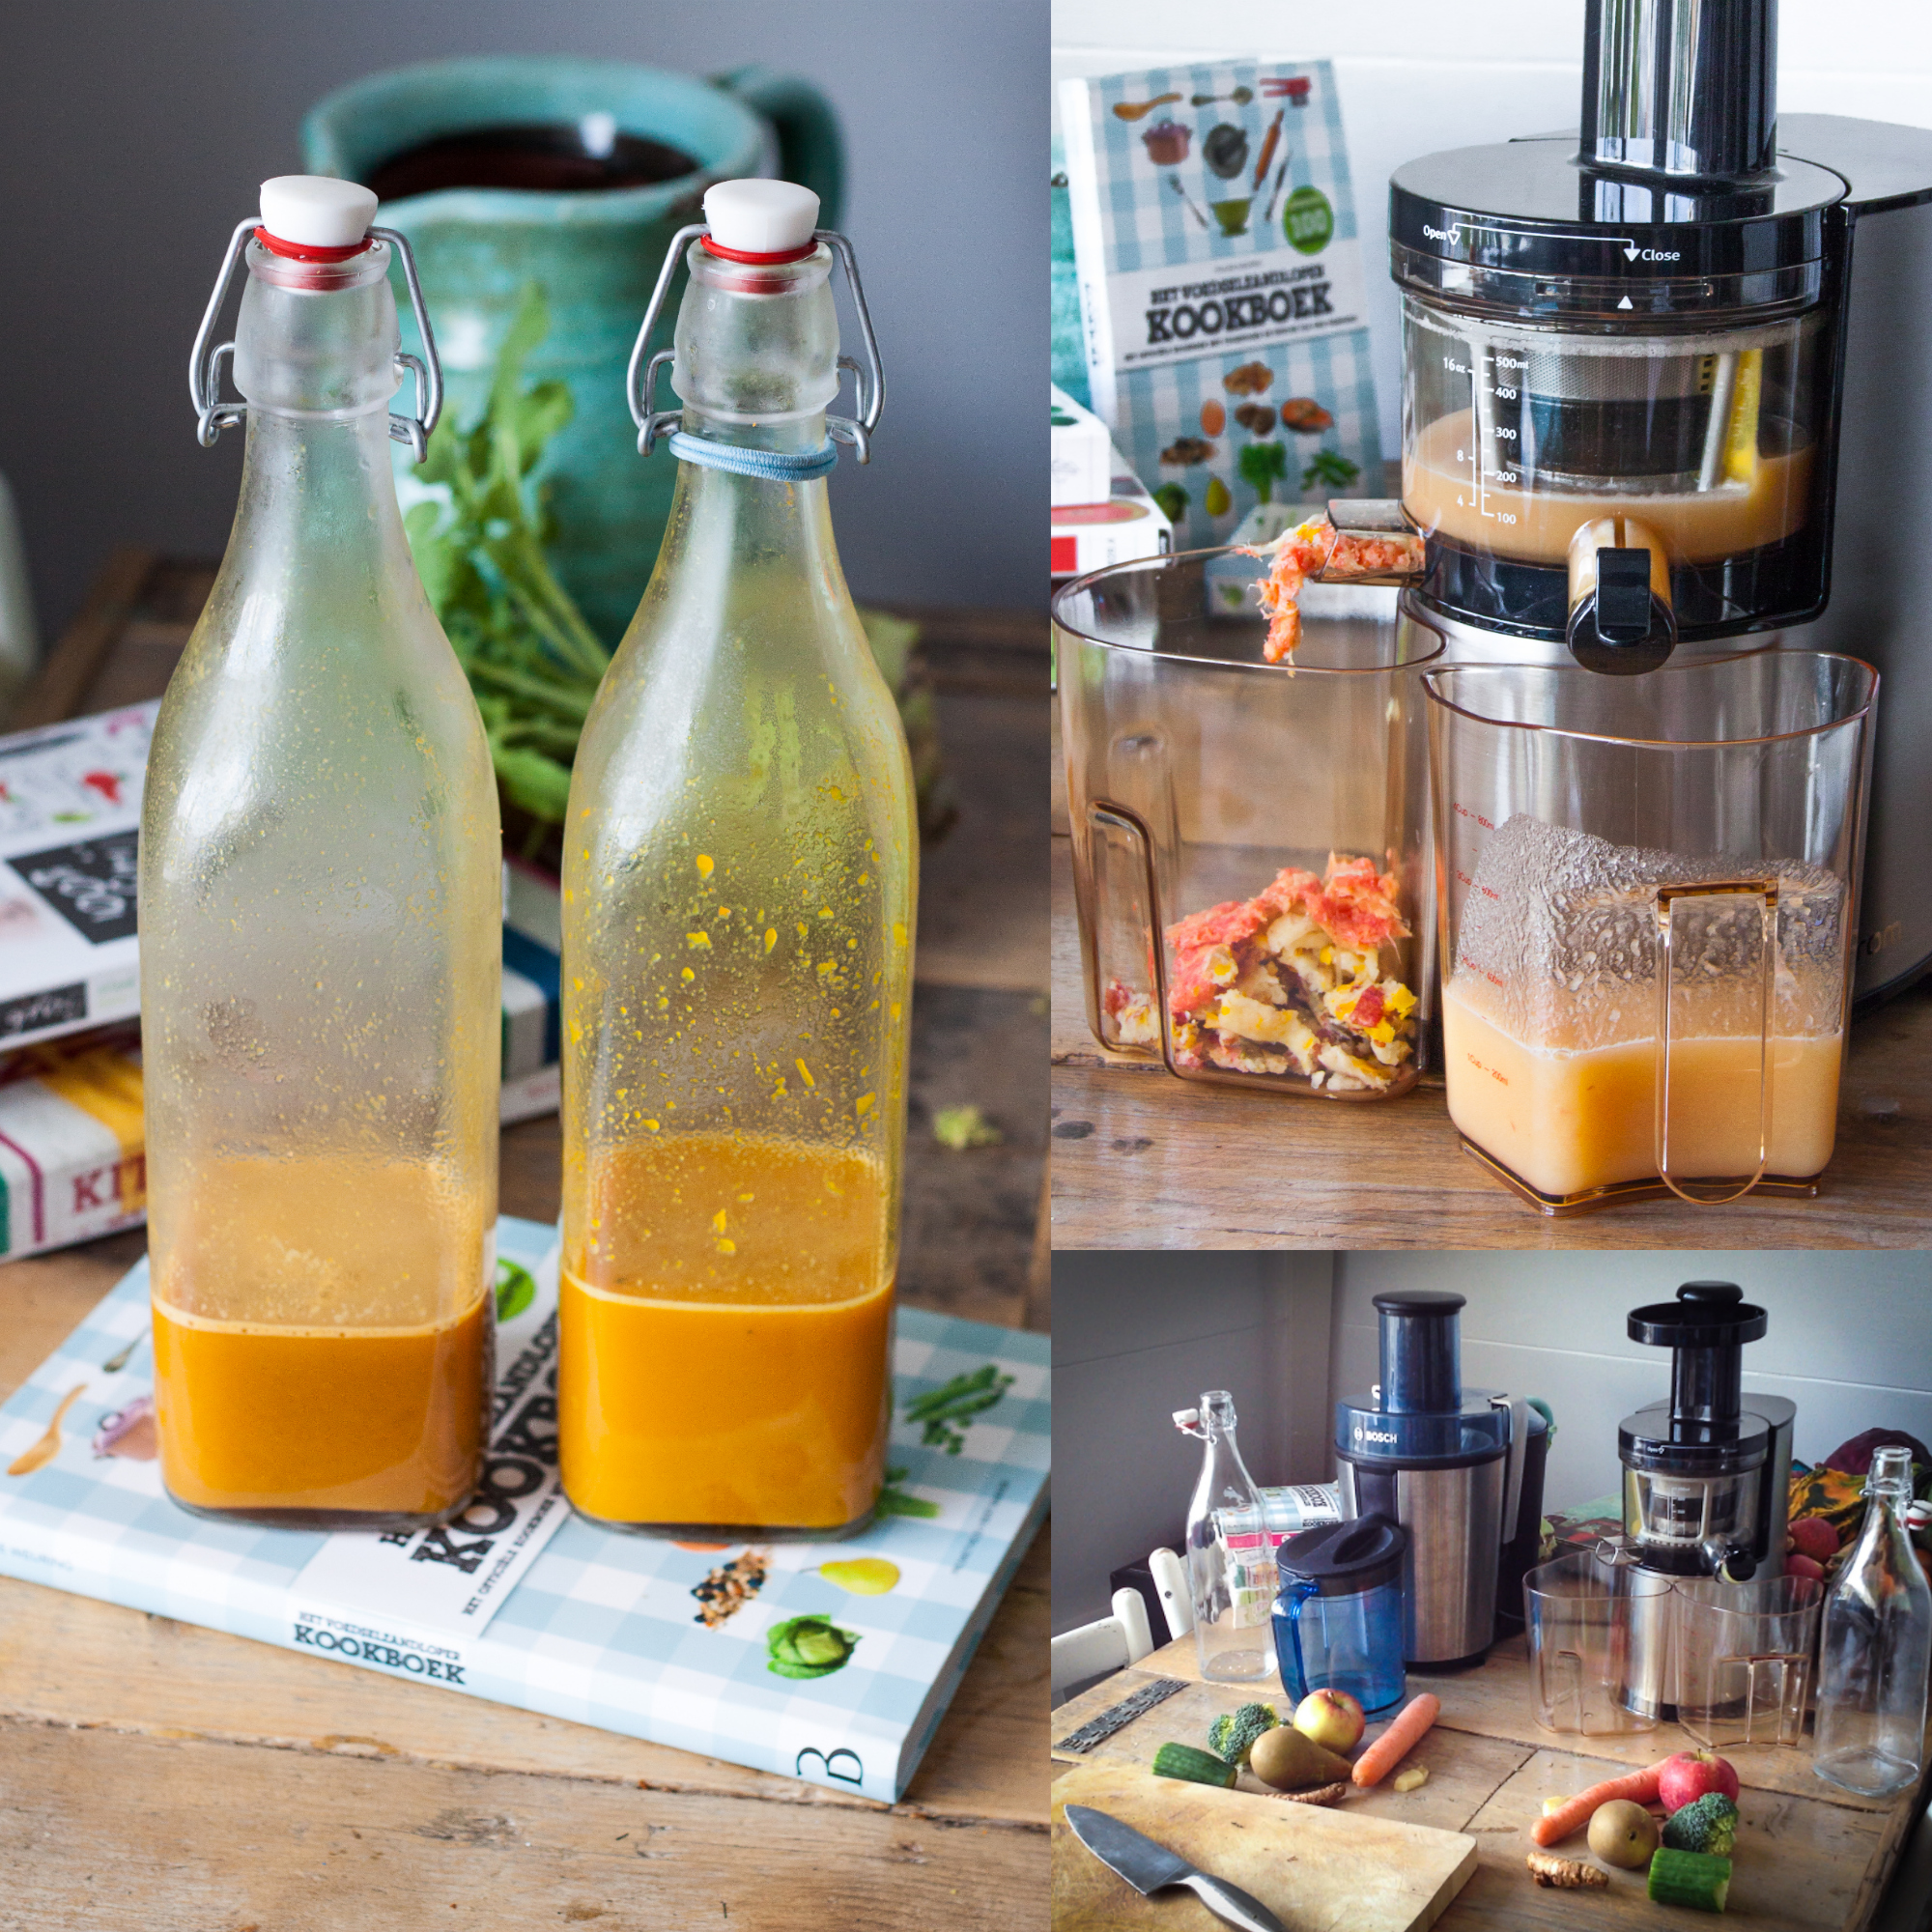 Juice Recipes For Slow Juicer : Review // Slow Juicer ft. Sapcentrifuge - Moderne Hippies